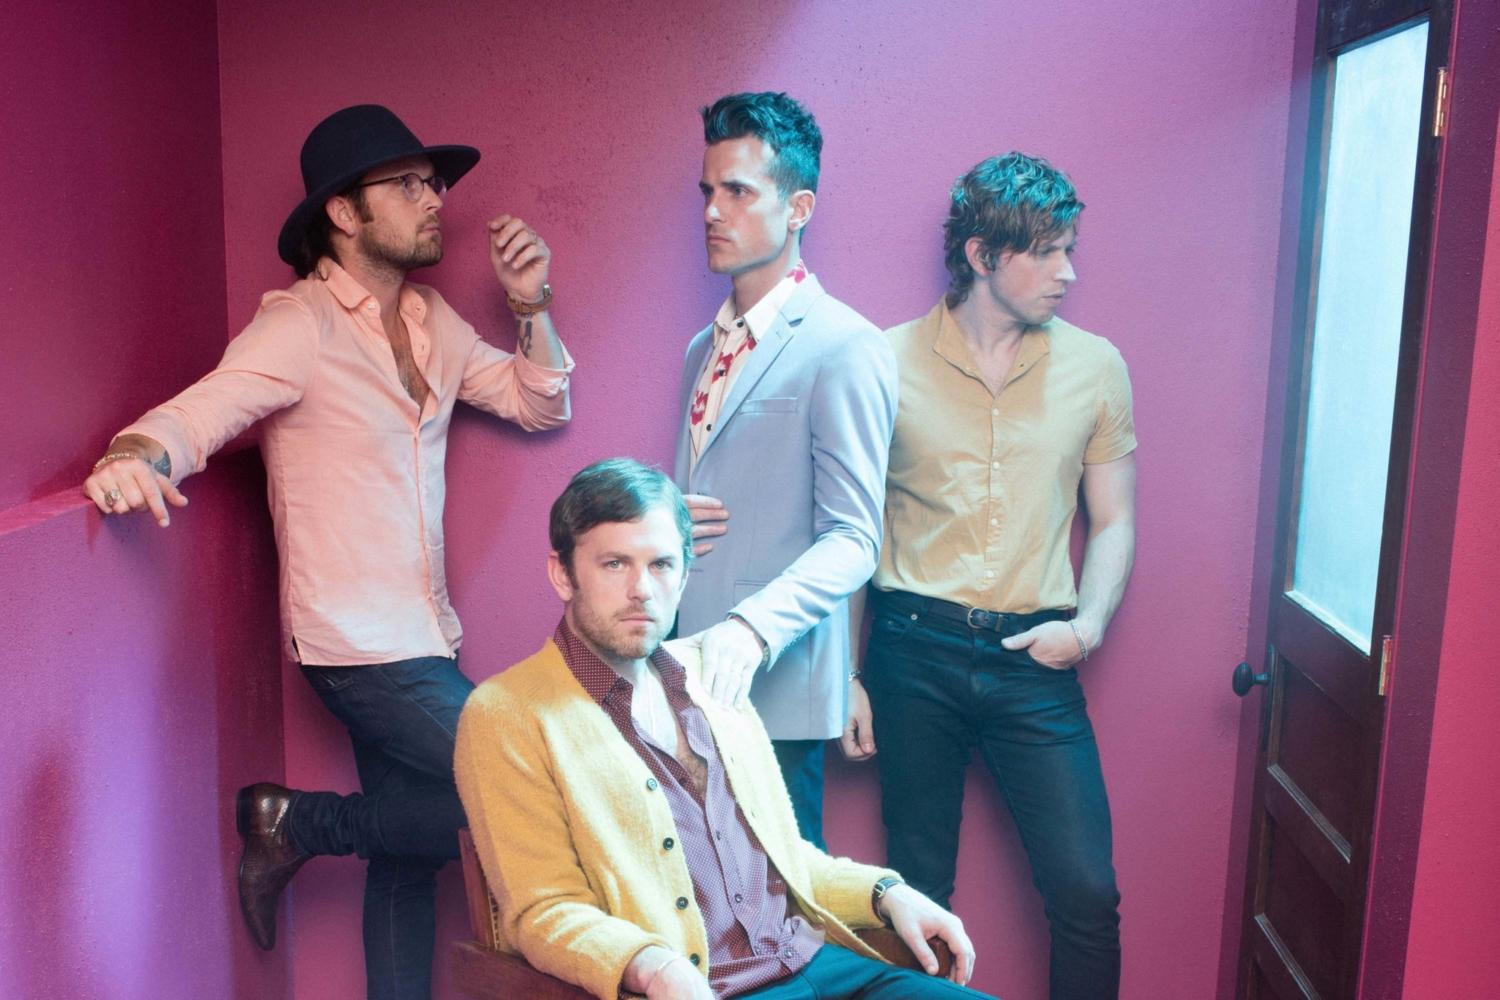 Kings of Leon, Courtney Barnett & Sigrid to play Lollapalooza Berlin